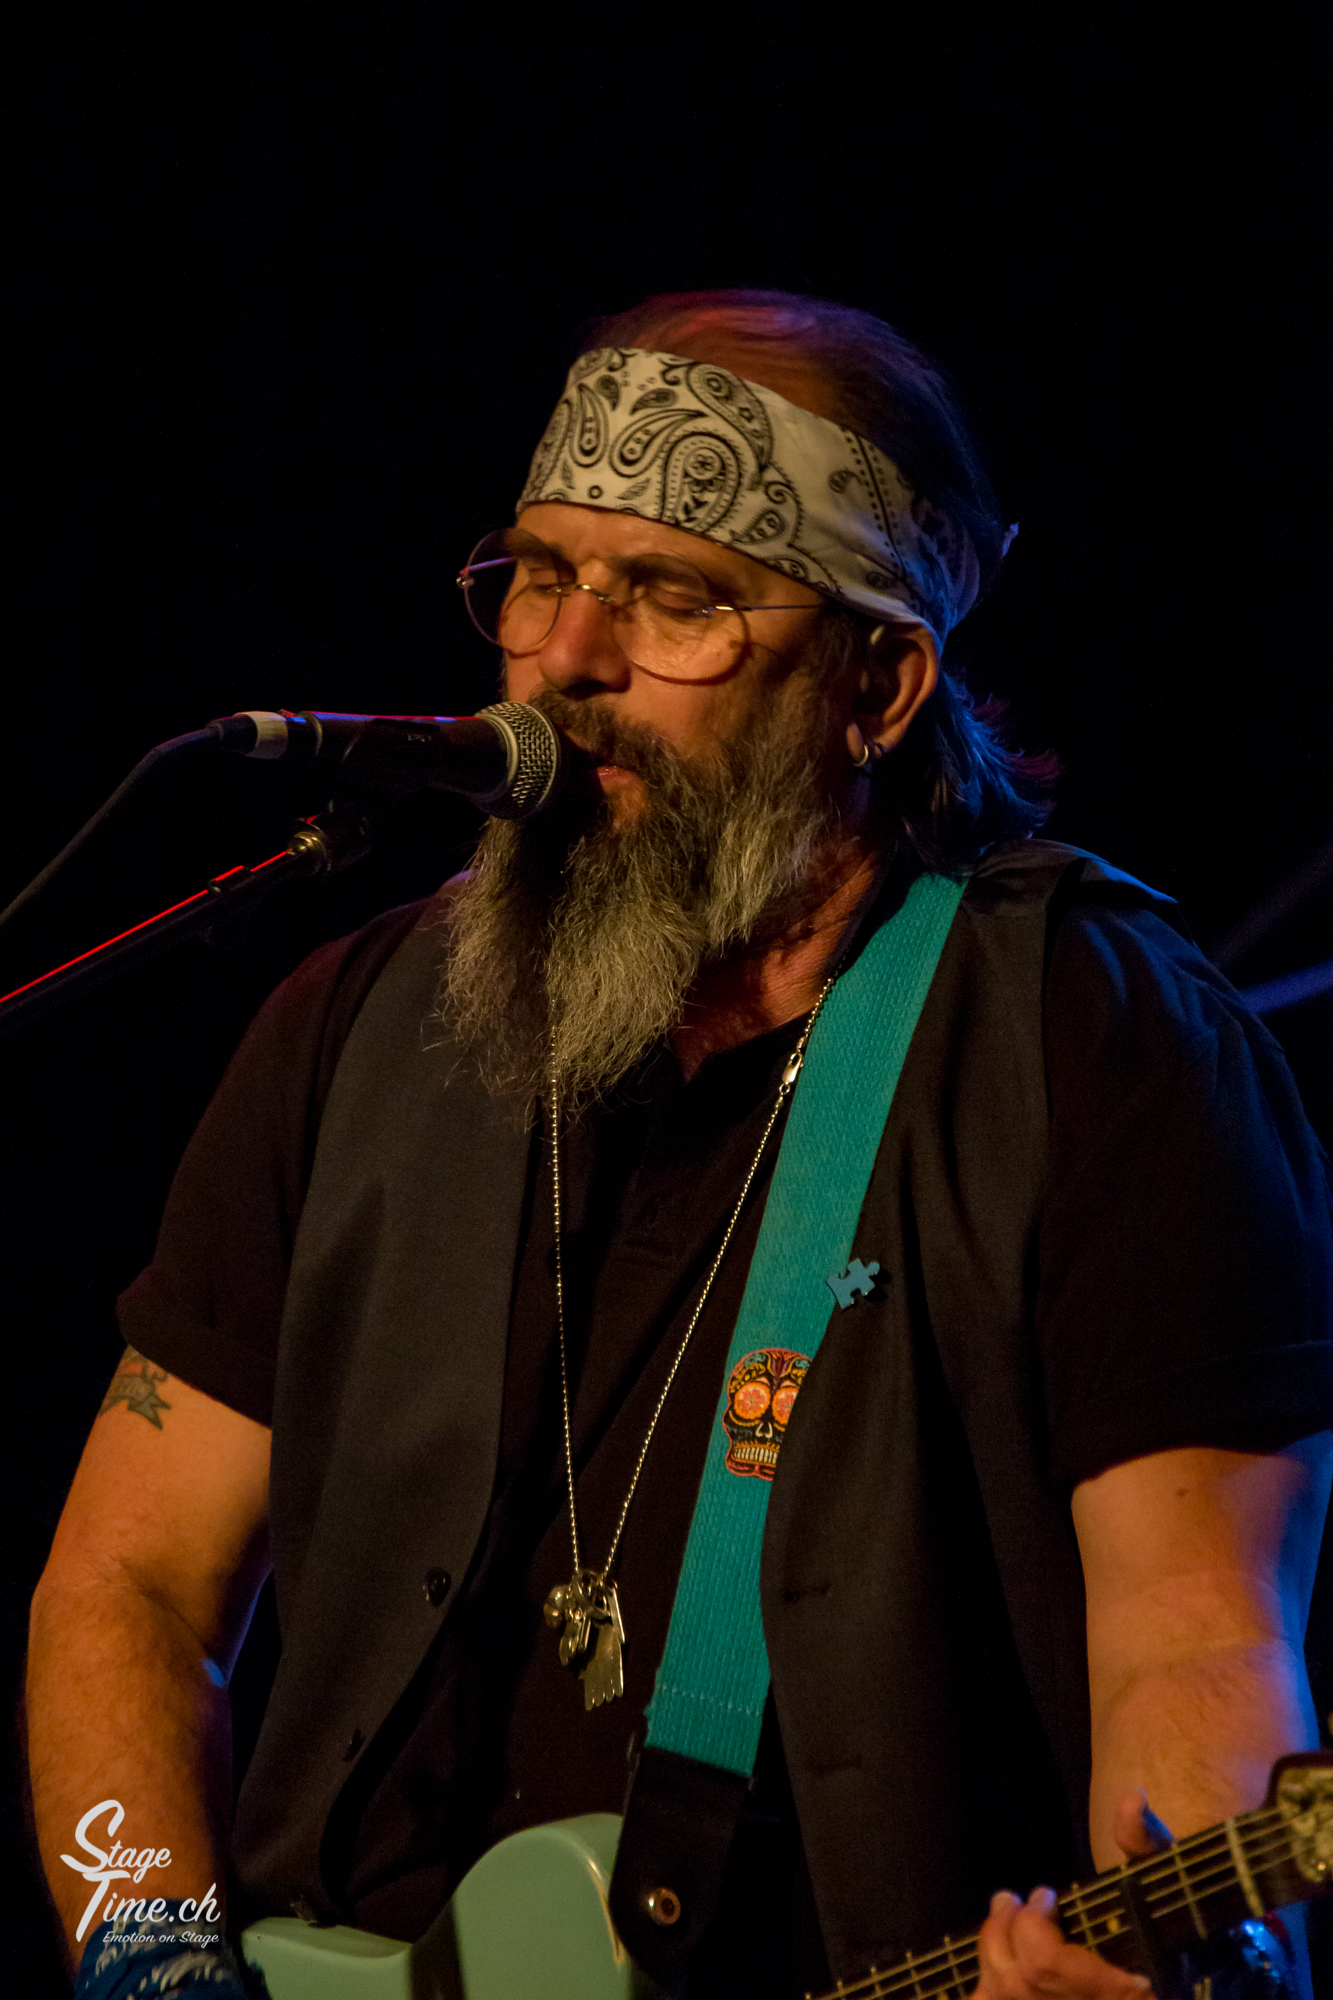 Steve_Earle_&_the_Dukes-5